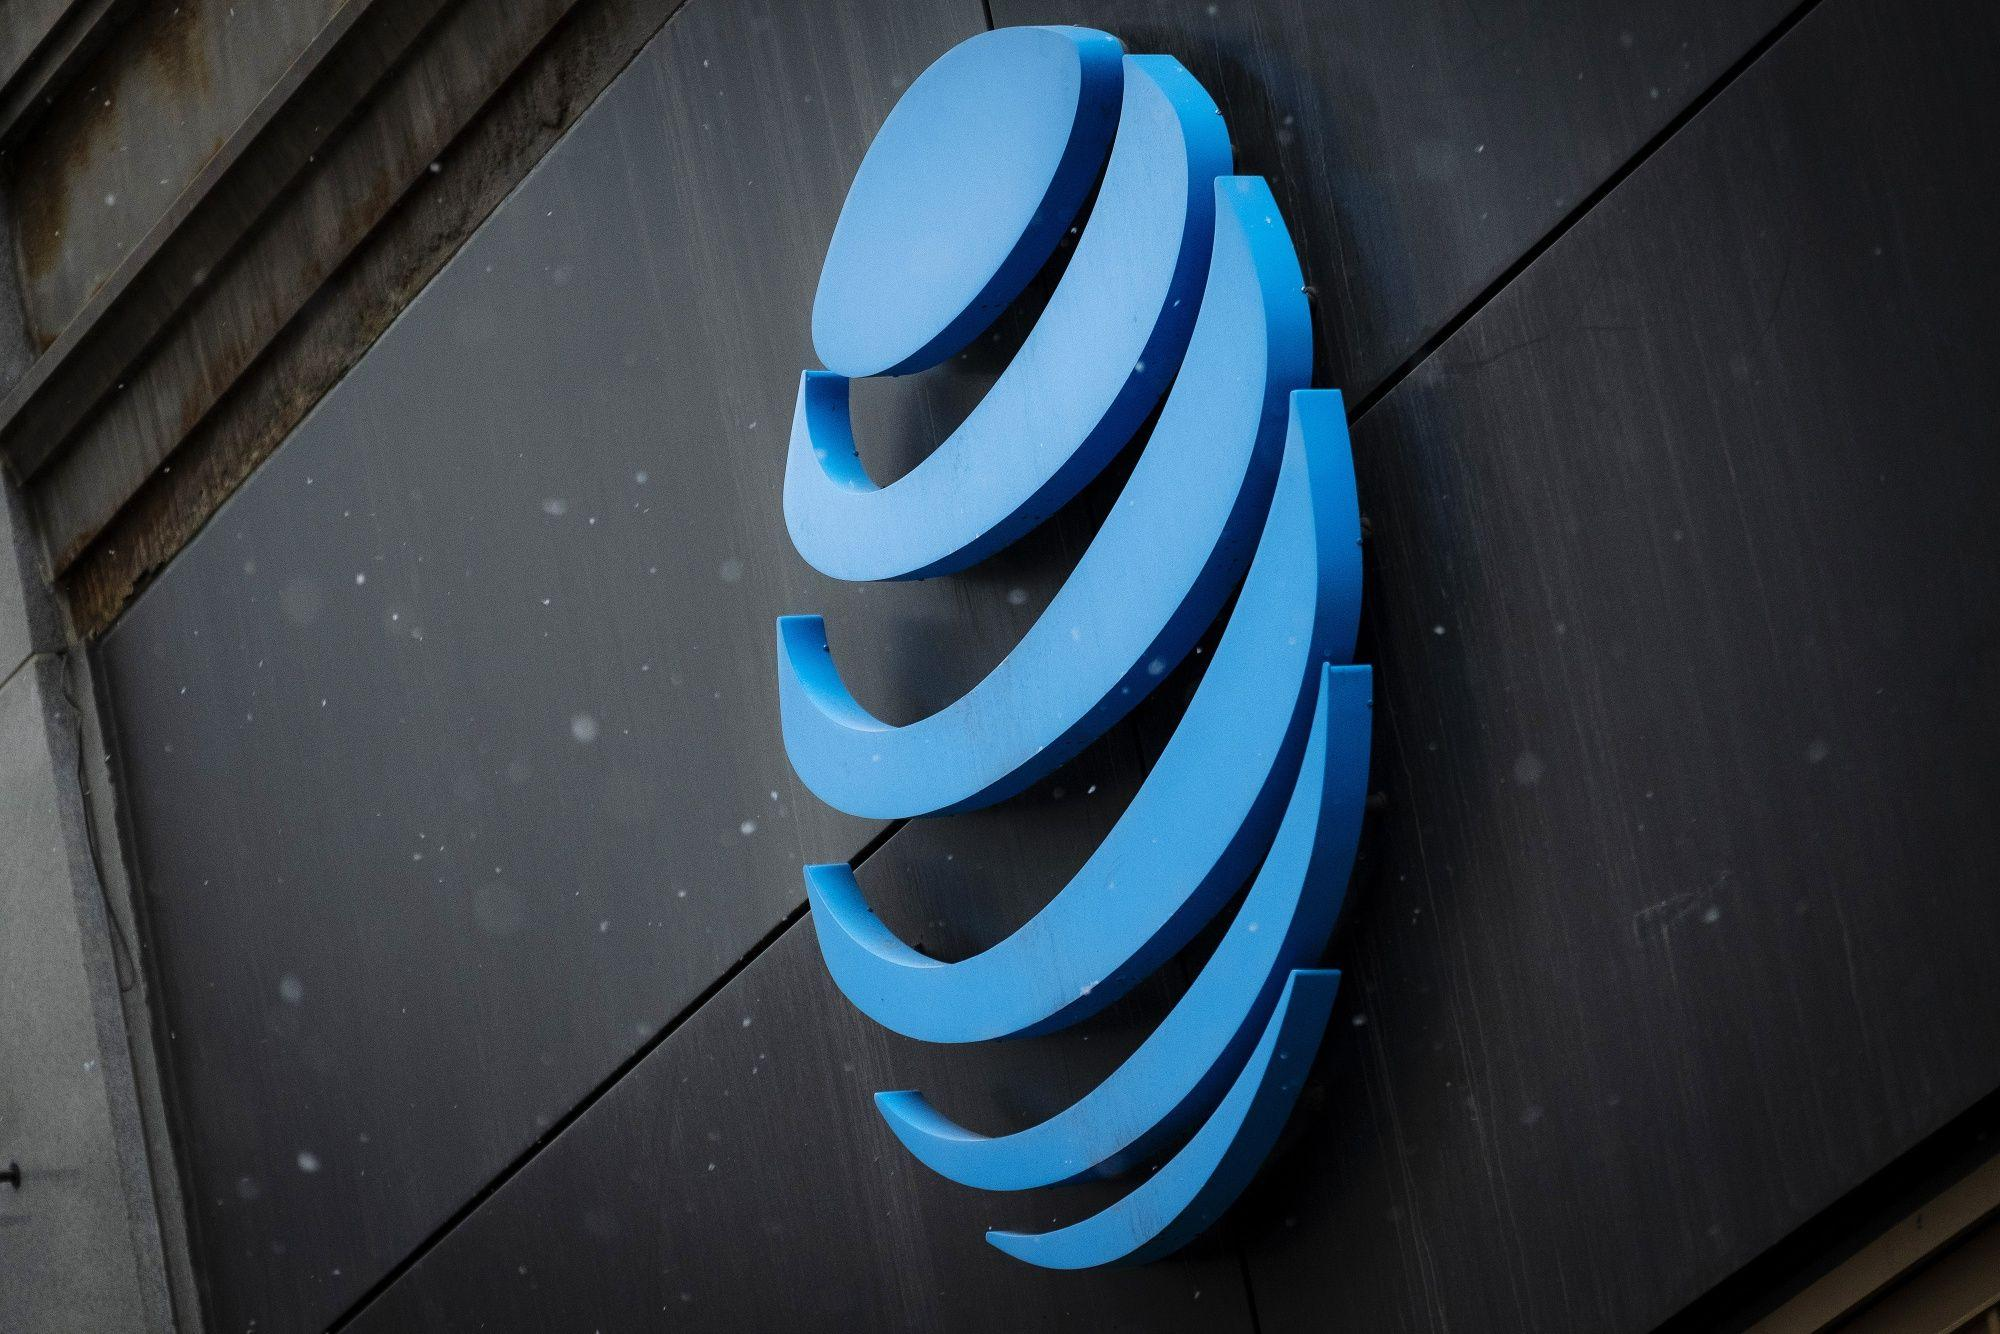 AT&T Is Weighing Sale of Puerto Rican Unit to Pay Down Debt